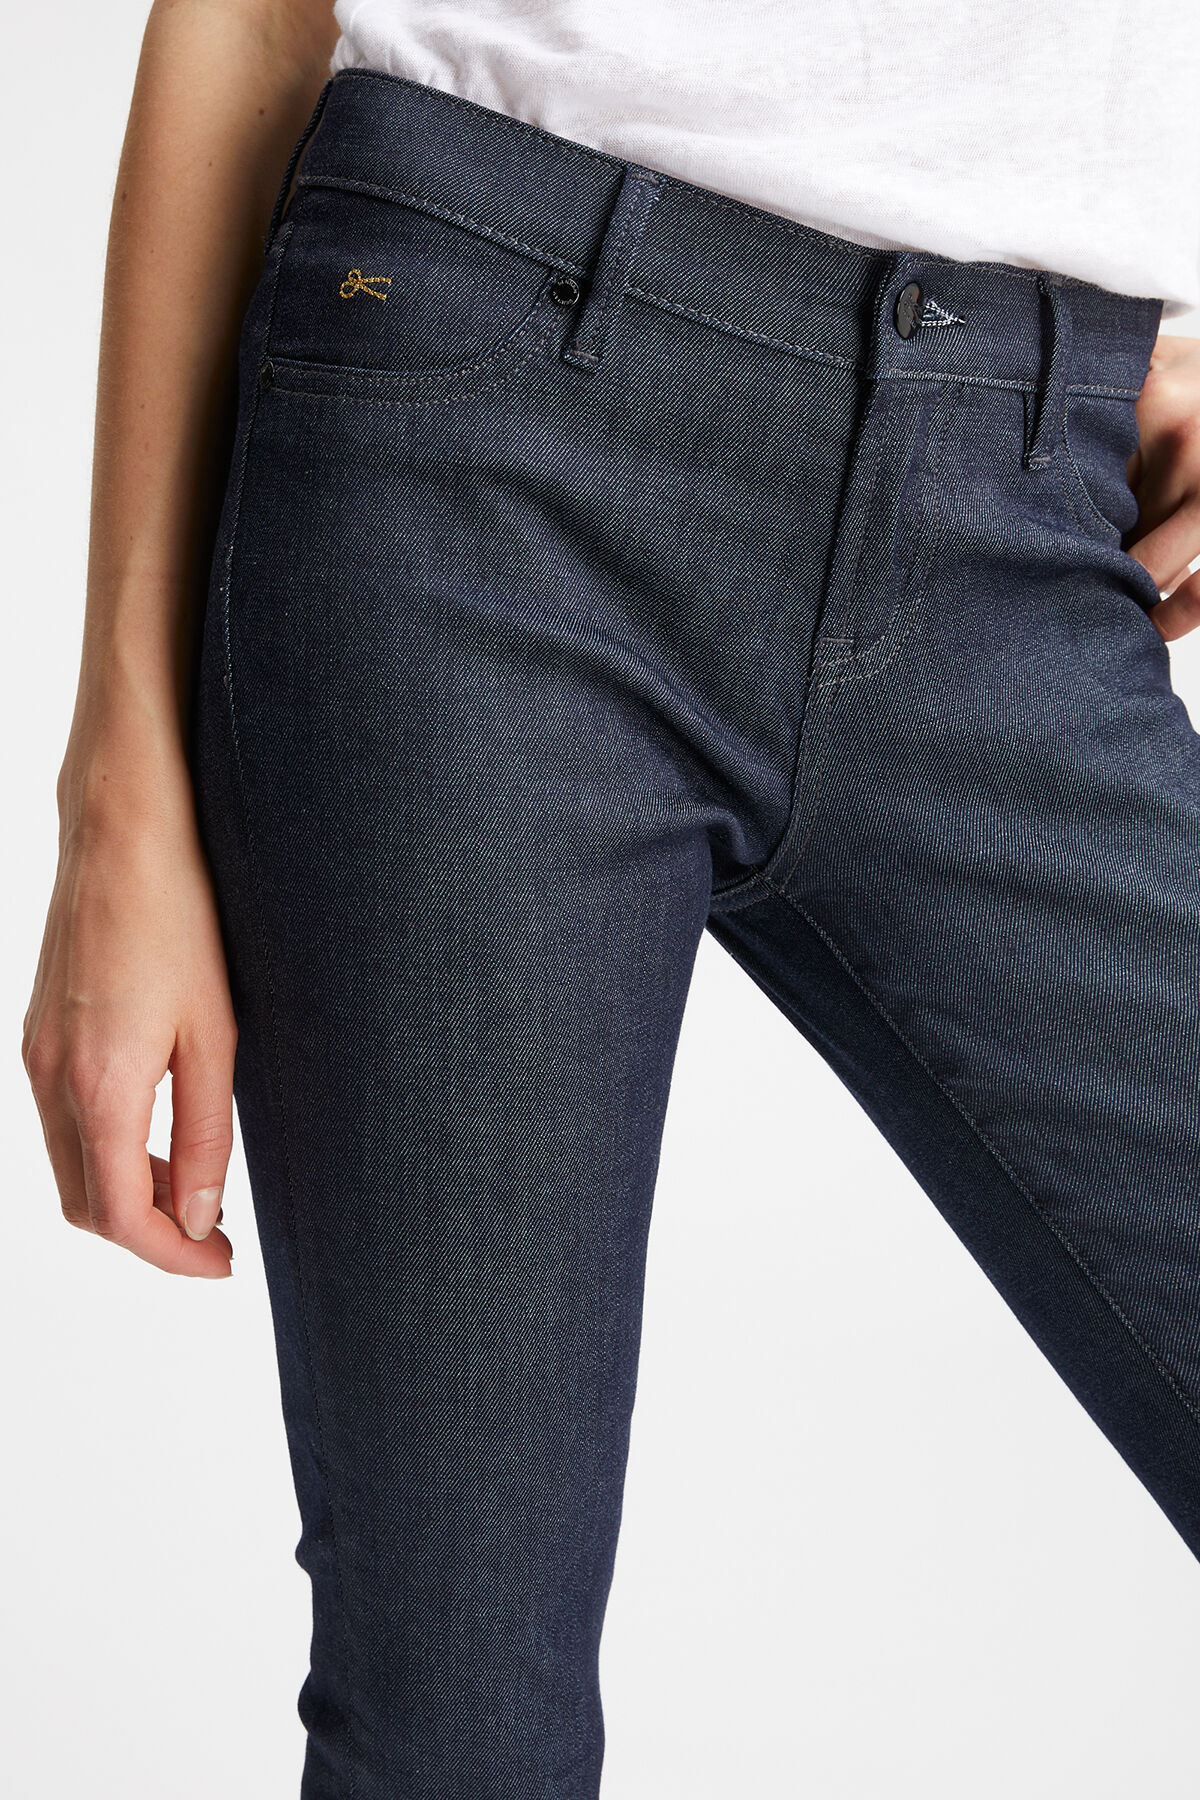 SPRAY Authentic Indigo Denim - Mid-rise, Tight Fit